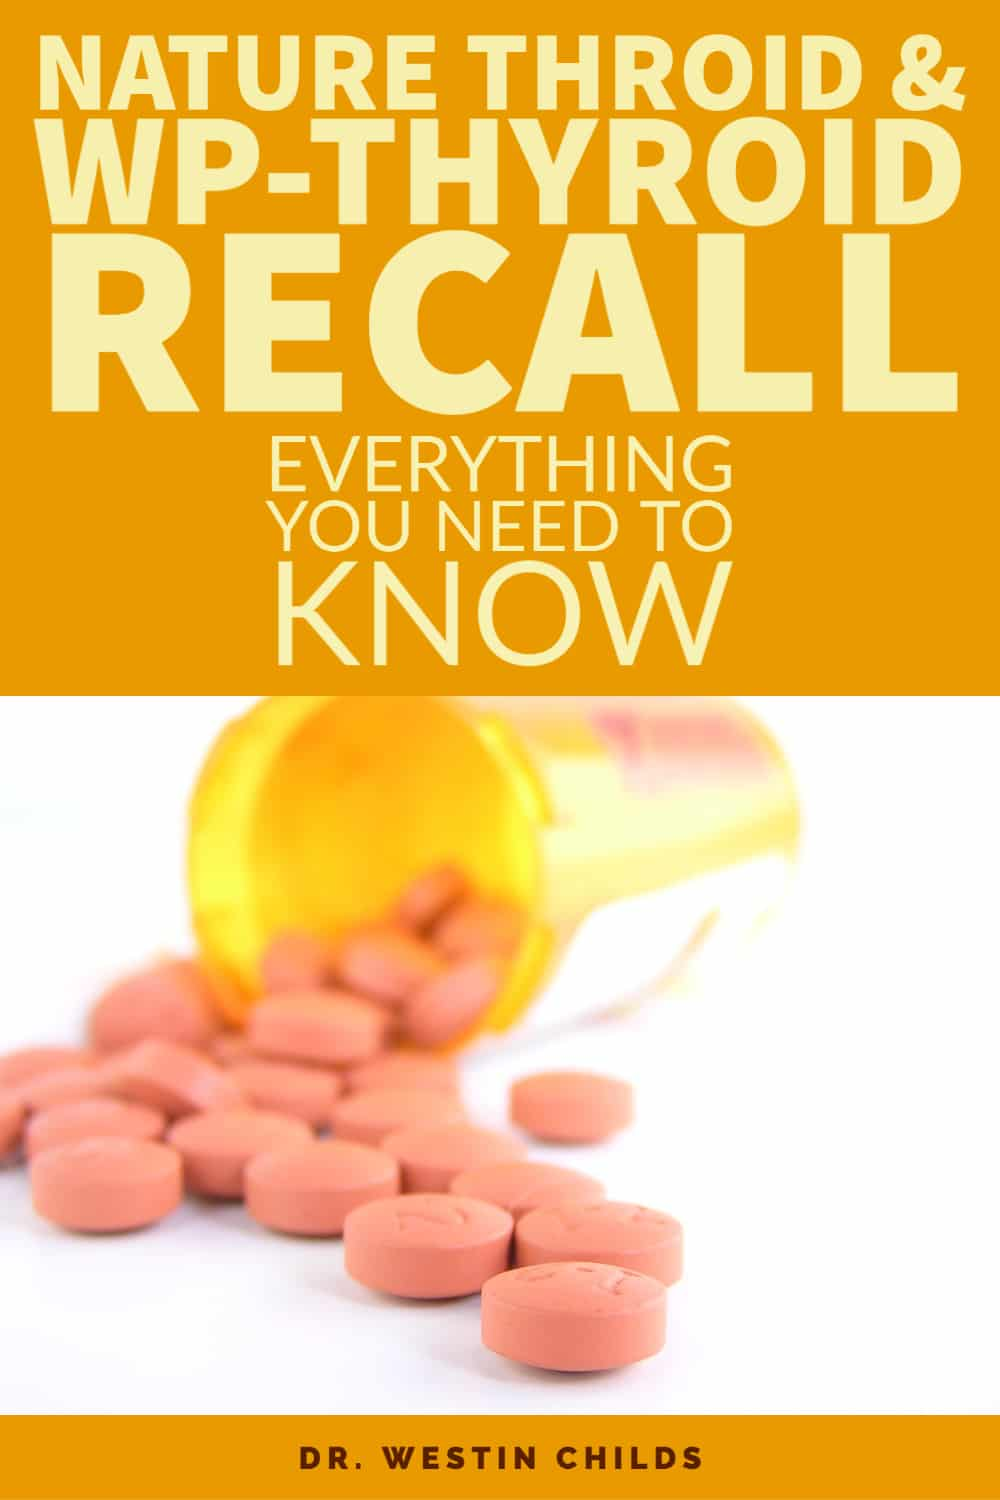 thyroid nature throid recall lots